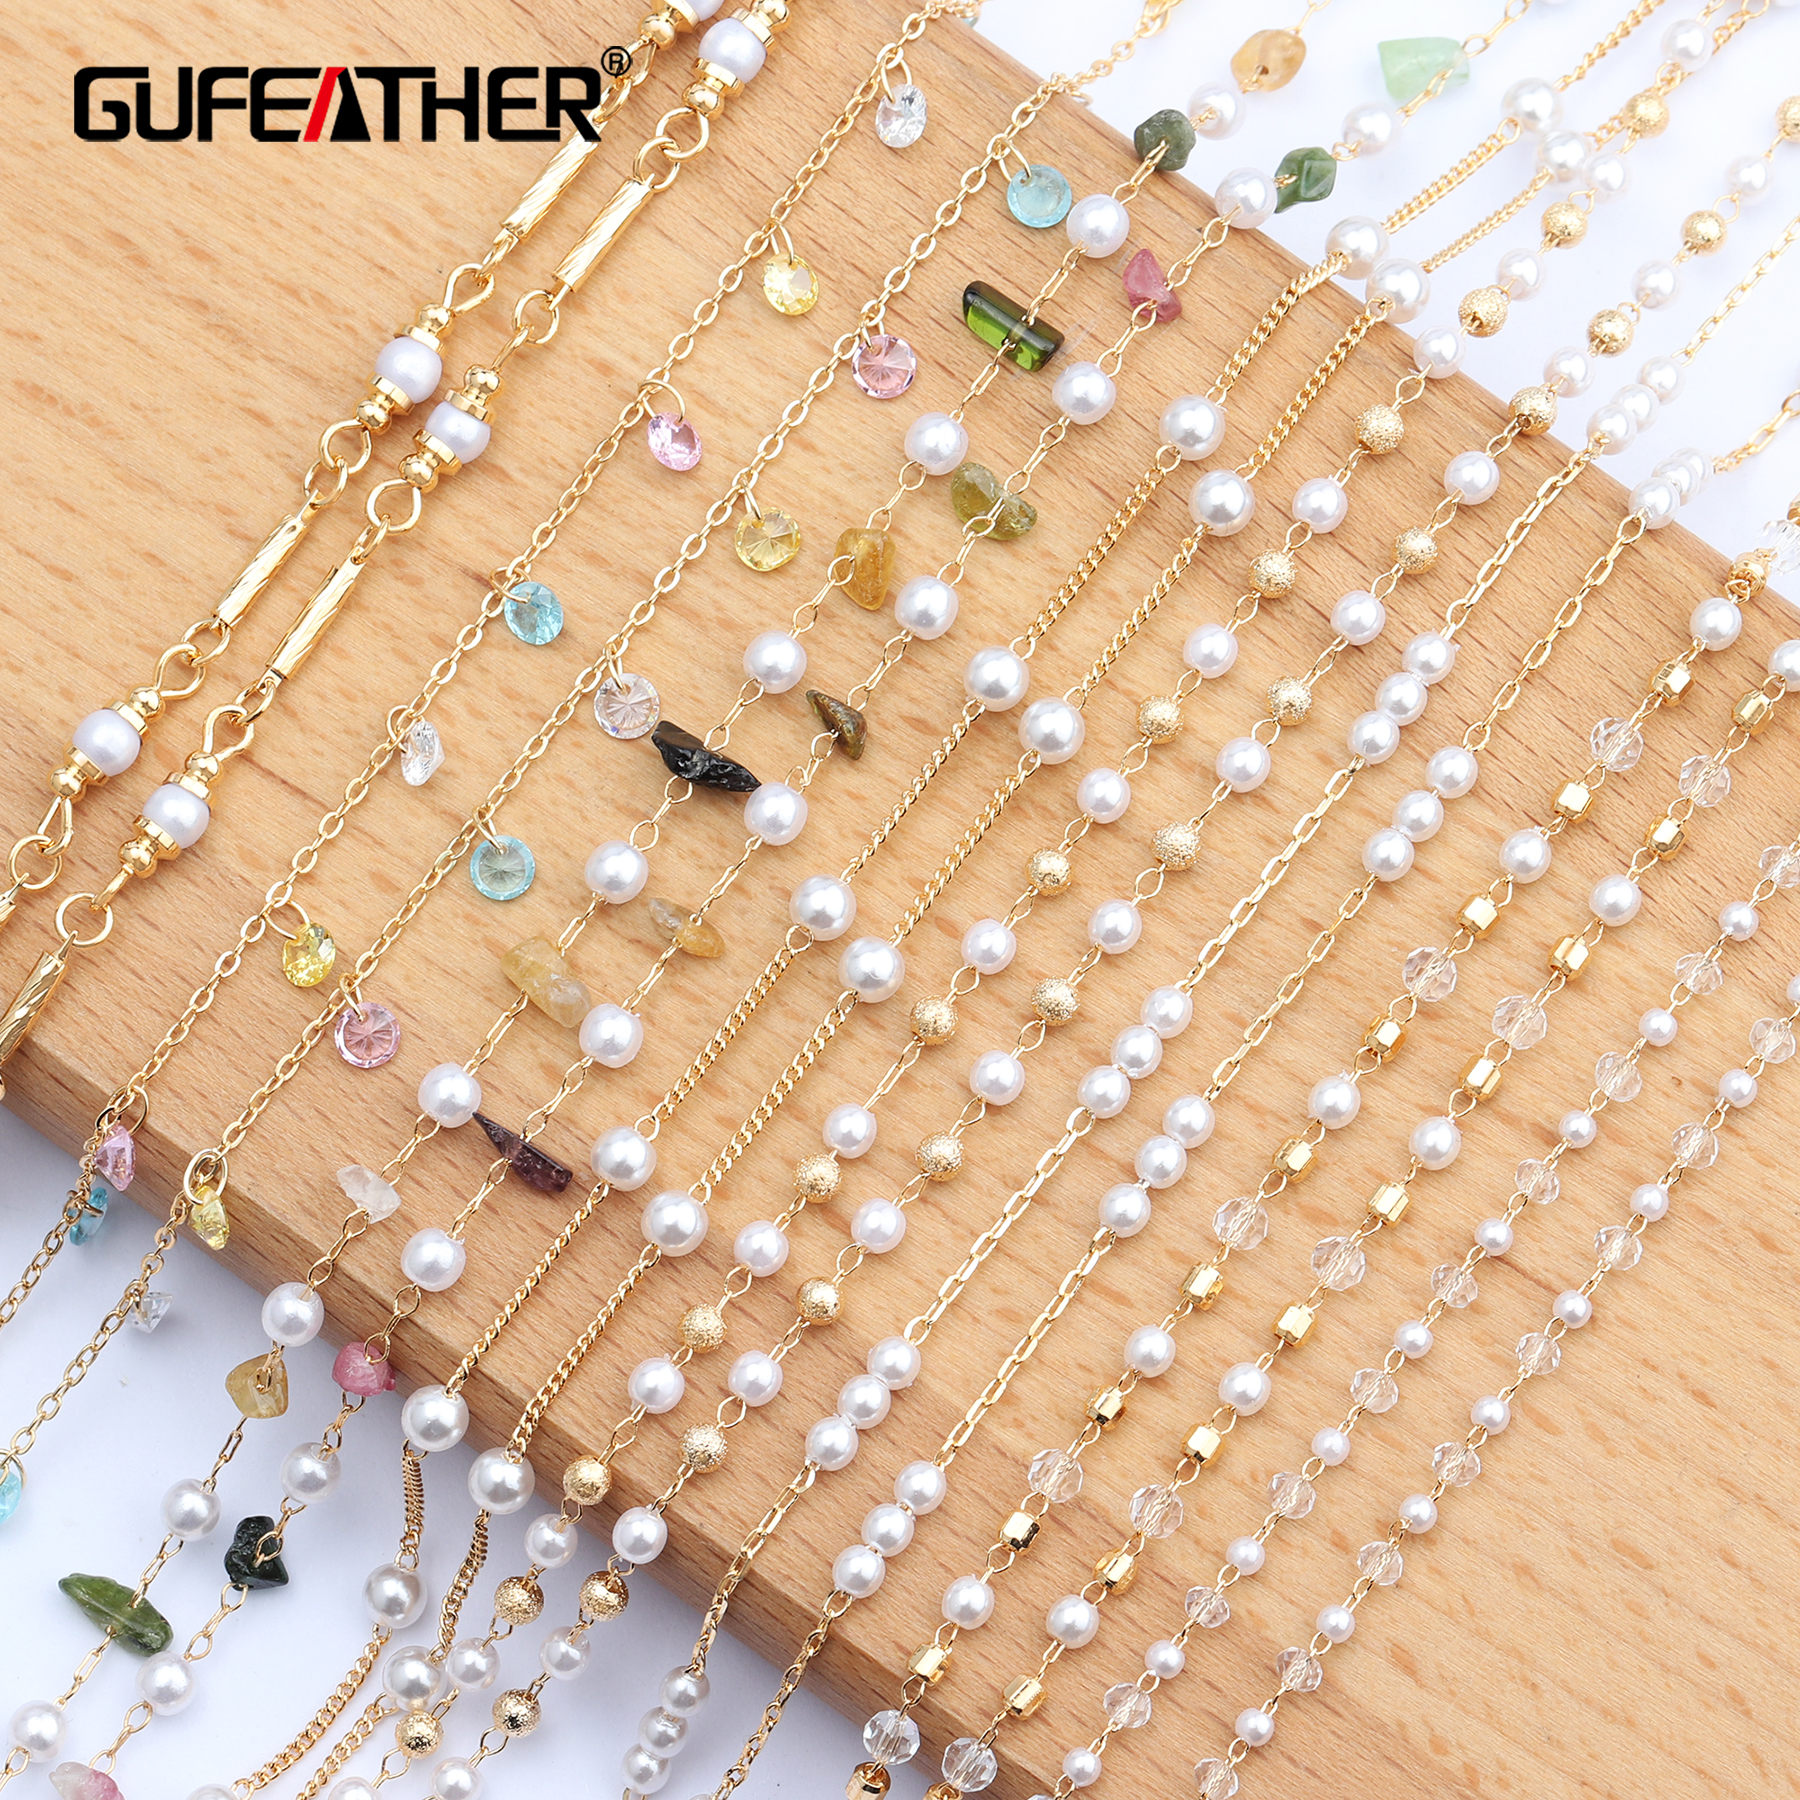 GUFEATHER C63,jewelry Accessories,18k Gold Plated,copper Chain,beads,natural Stone,diy Chain Necklace,jewelry Making,1m/lot